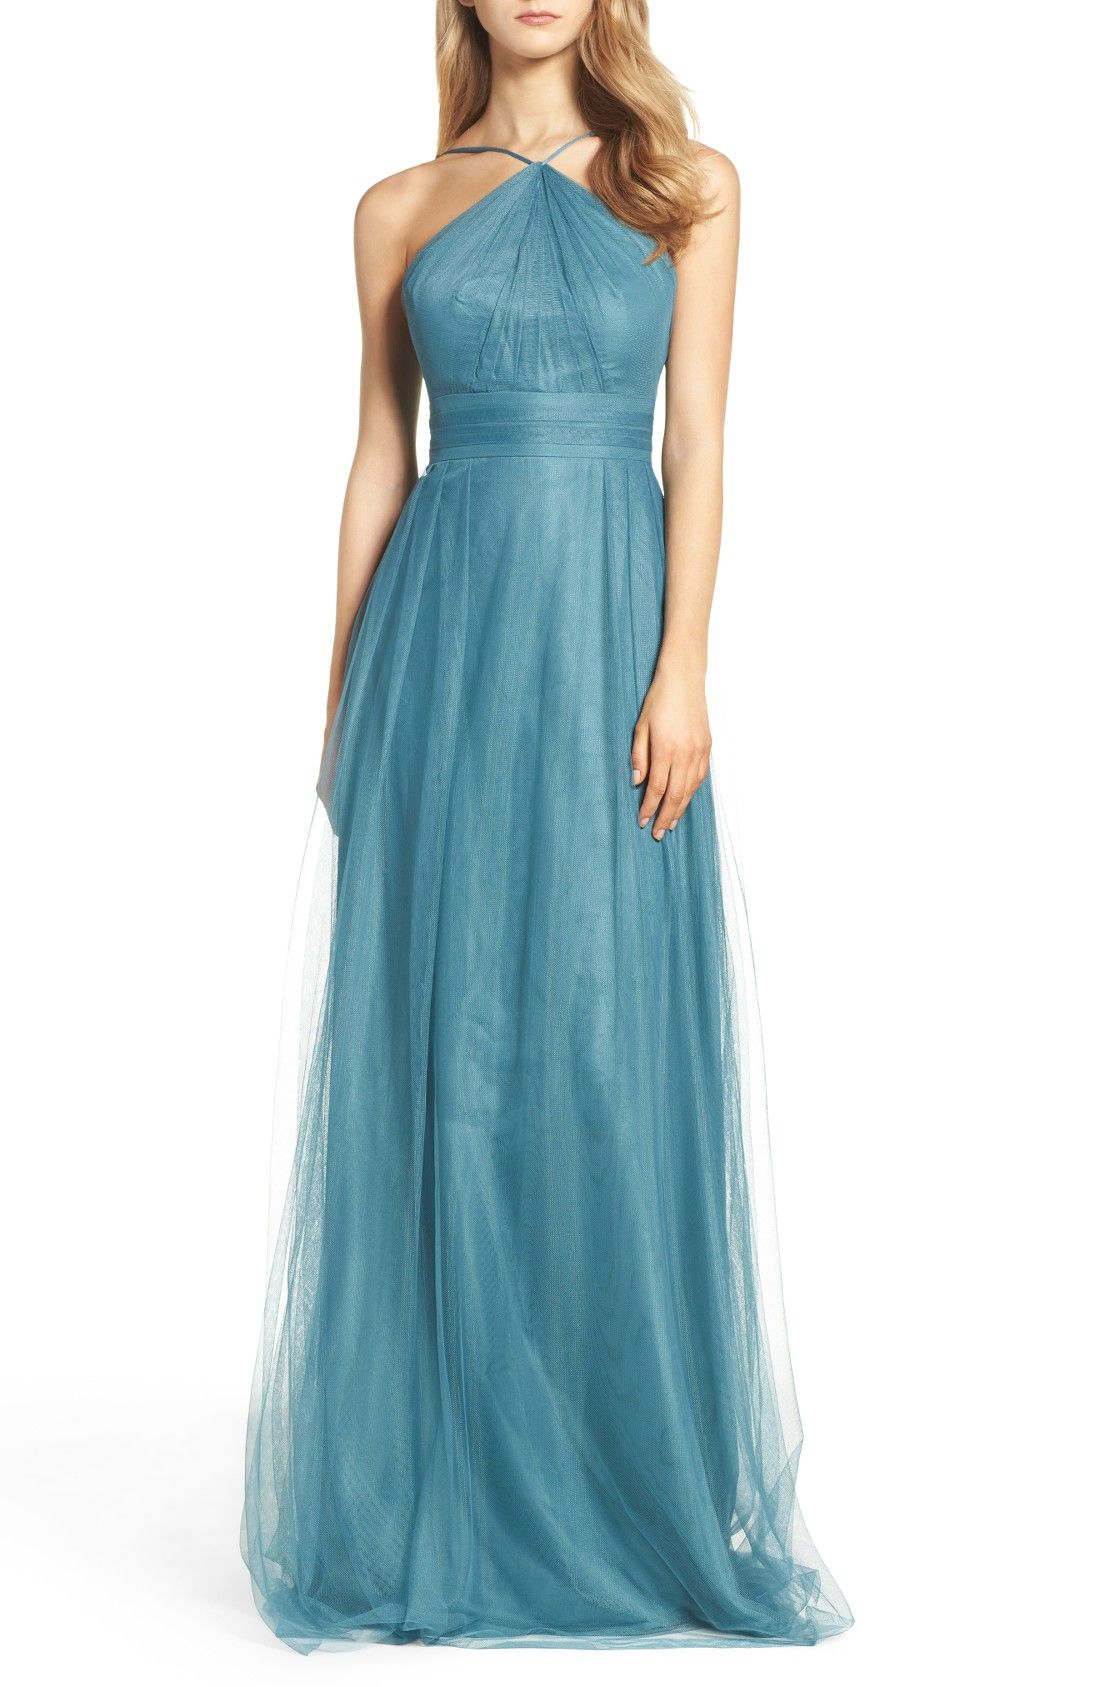 Tulle Halter Style Gown | Blue Wedding Ideas | Pinterest | Gowns and ...